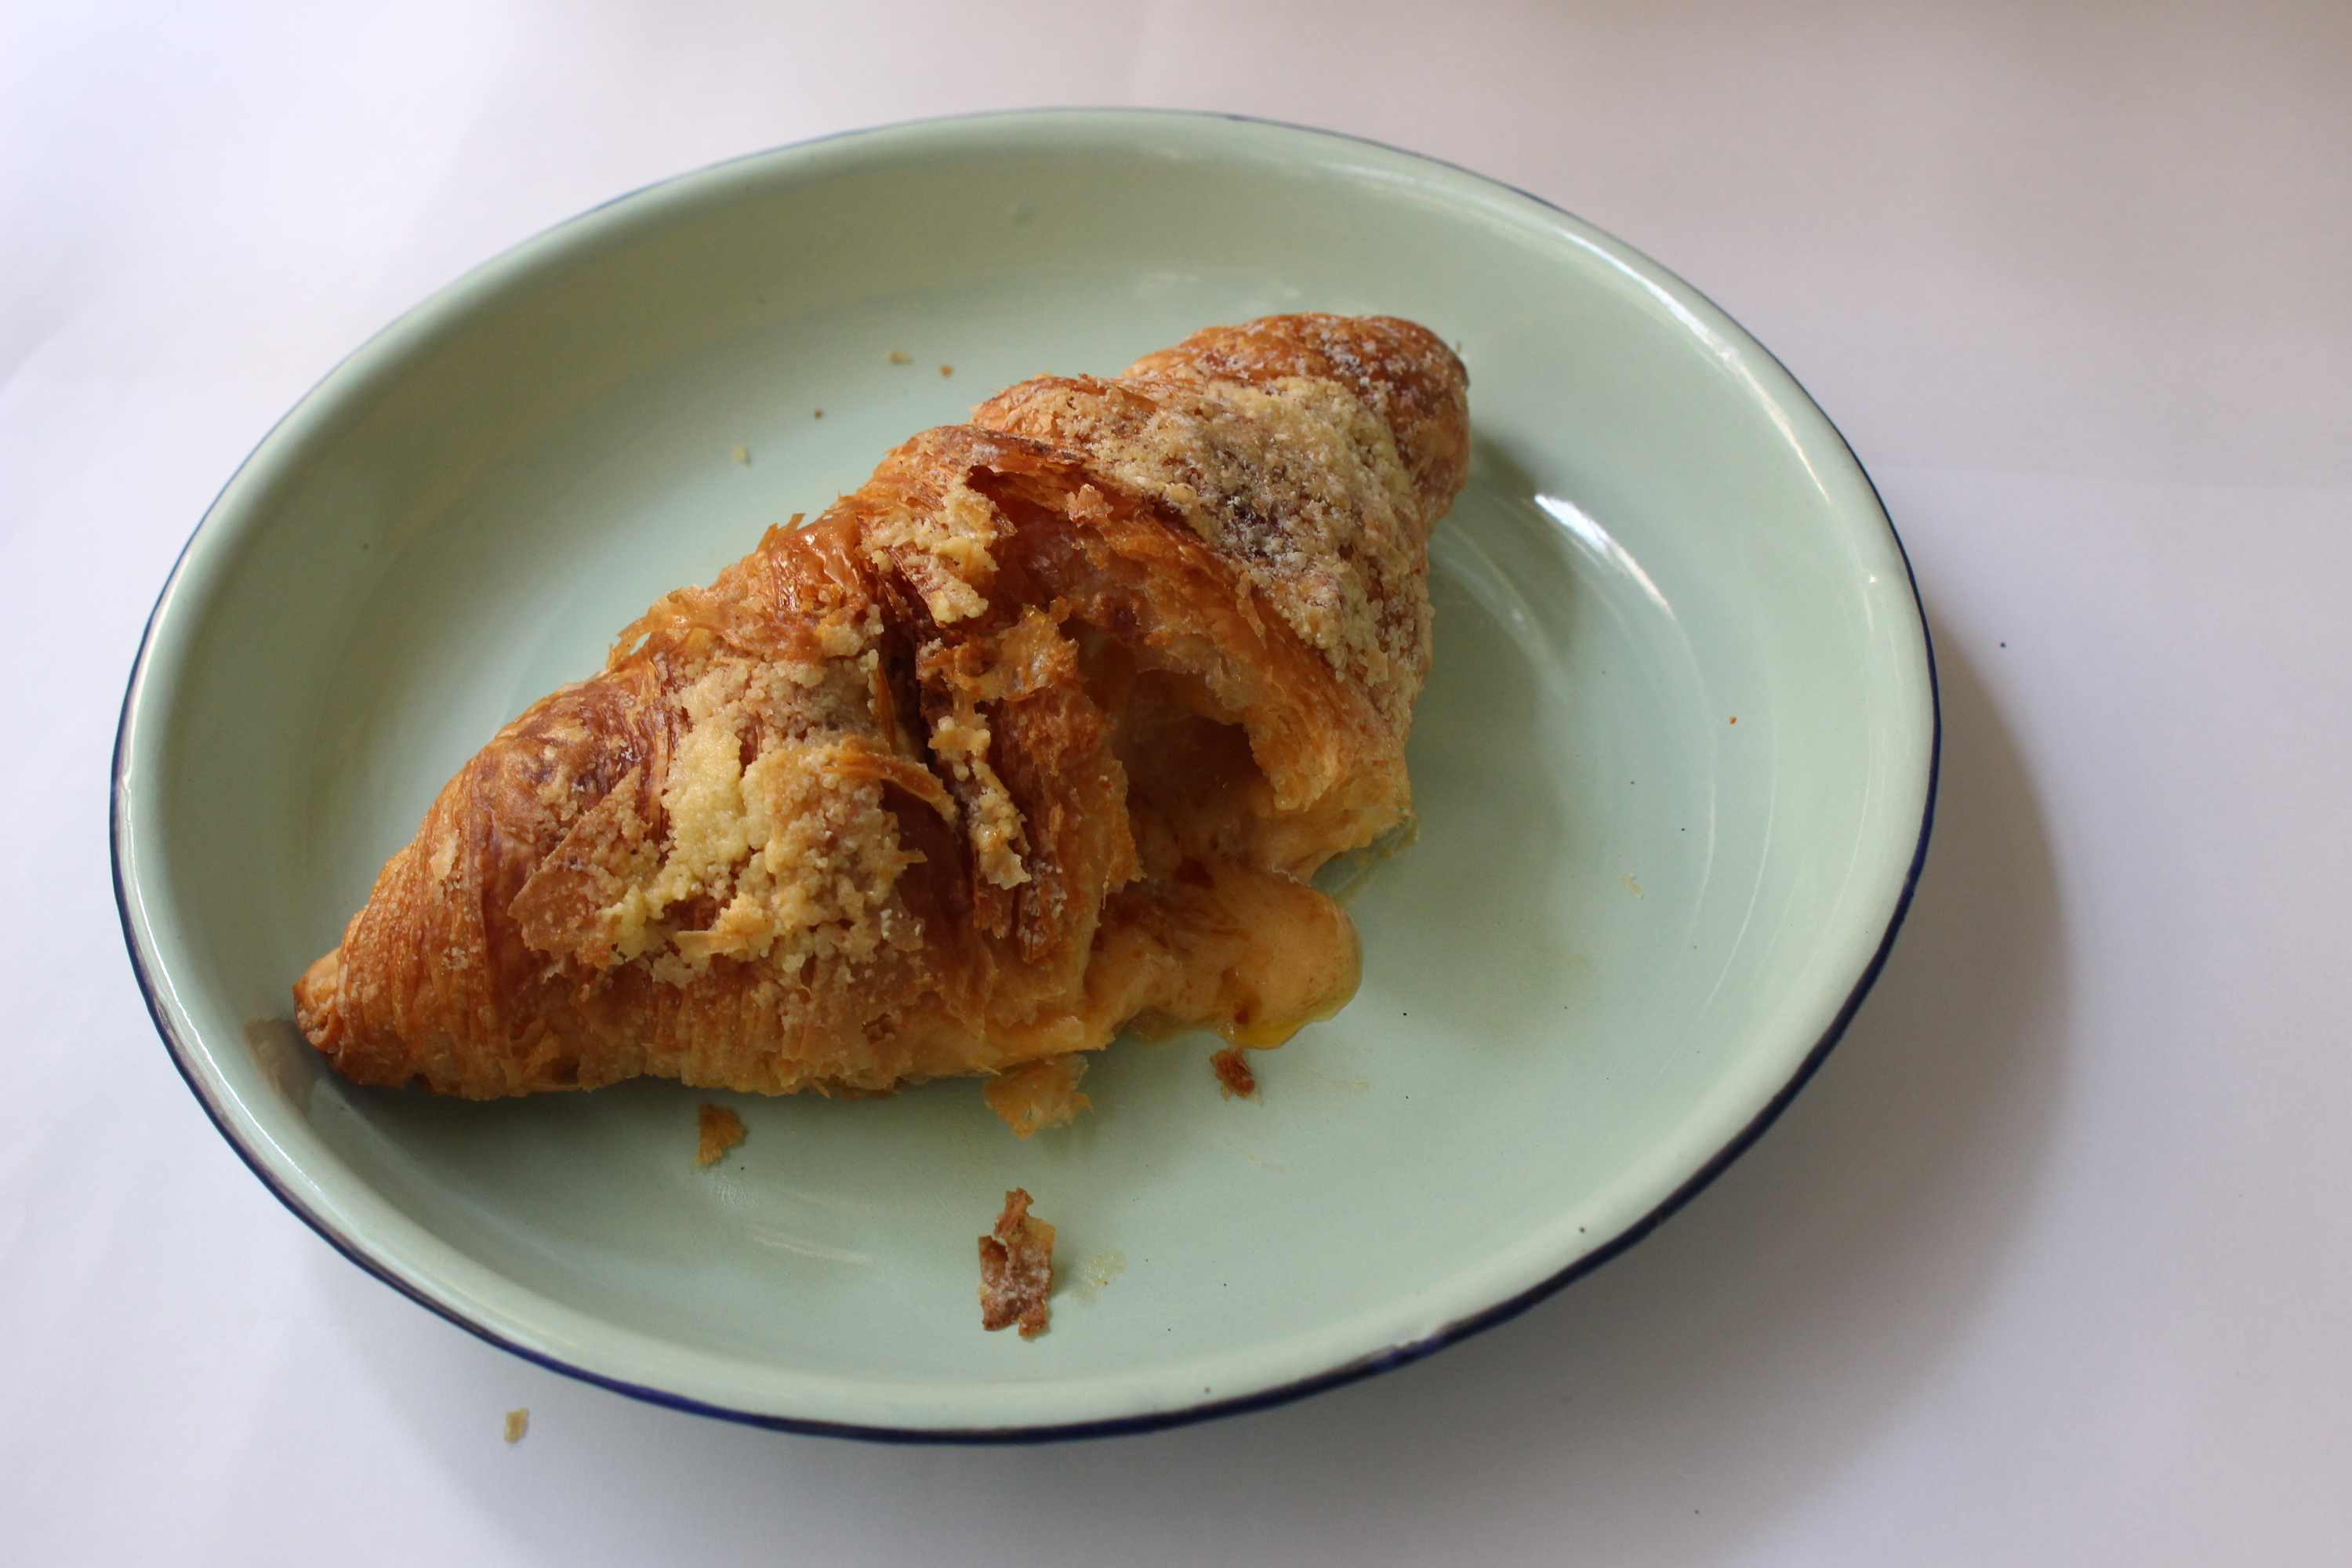 Salted egg croissants at Le Bread Days